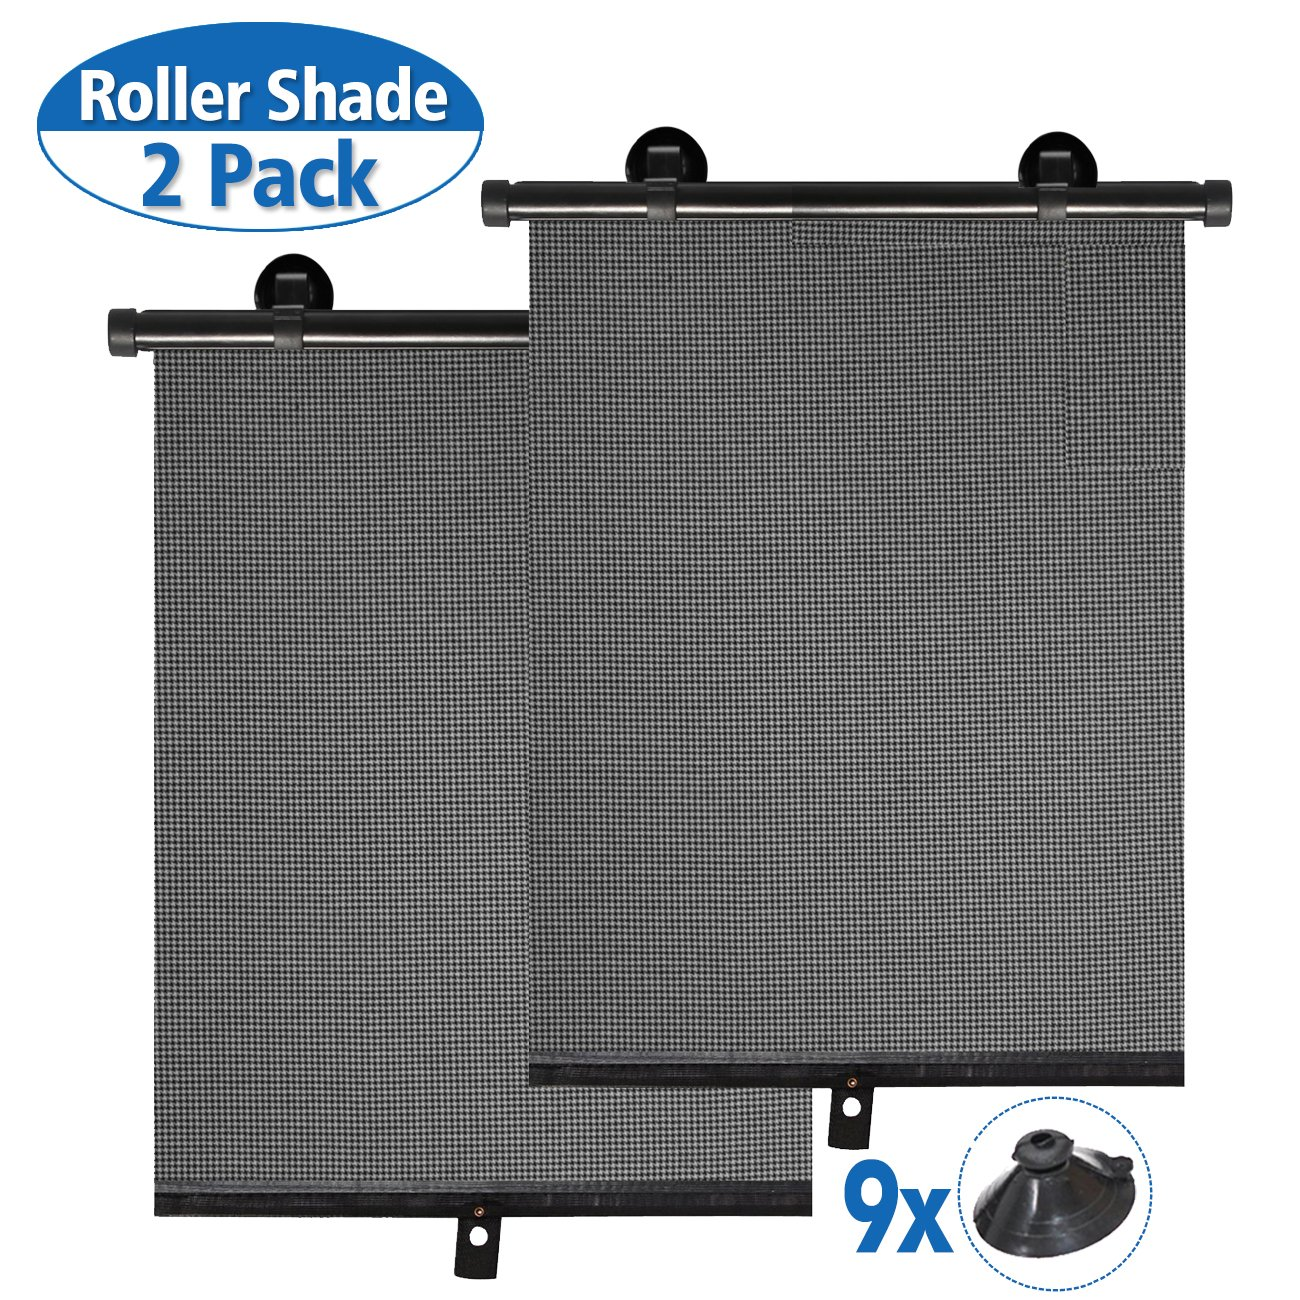 punada Car Sun Shade for Baby,Car Window Shade Roller Retractable Sunshade for Side Windows Windshield Sun Shade Blocks 98% of Harmful UV Rays